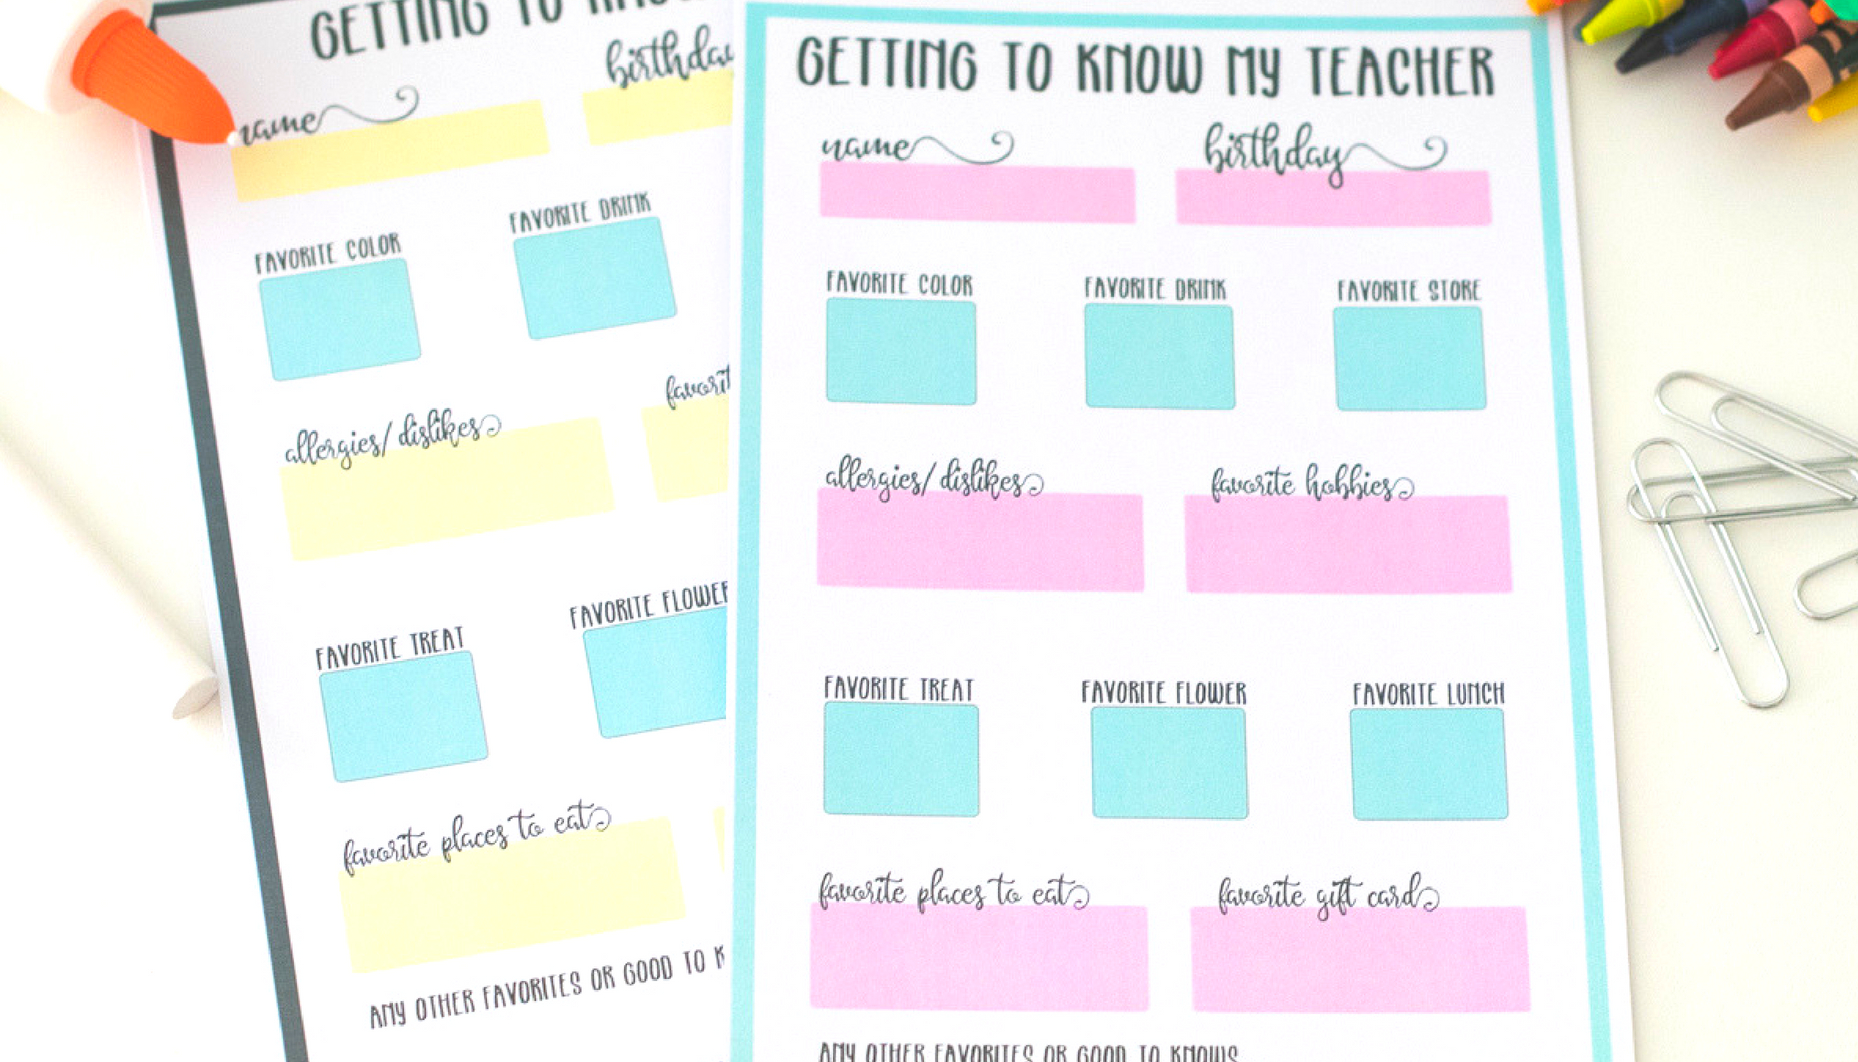 Get To Know My Teacher Free Printable Questionnaire - All About My Teacher Free Printable